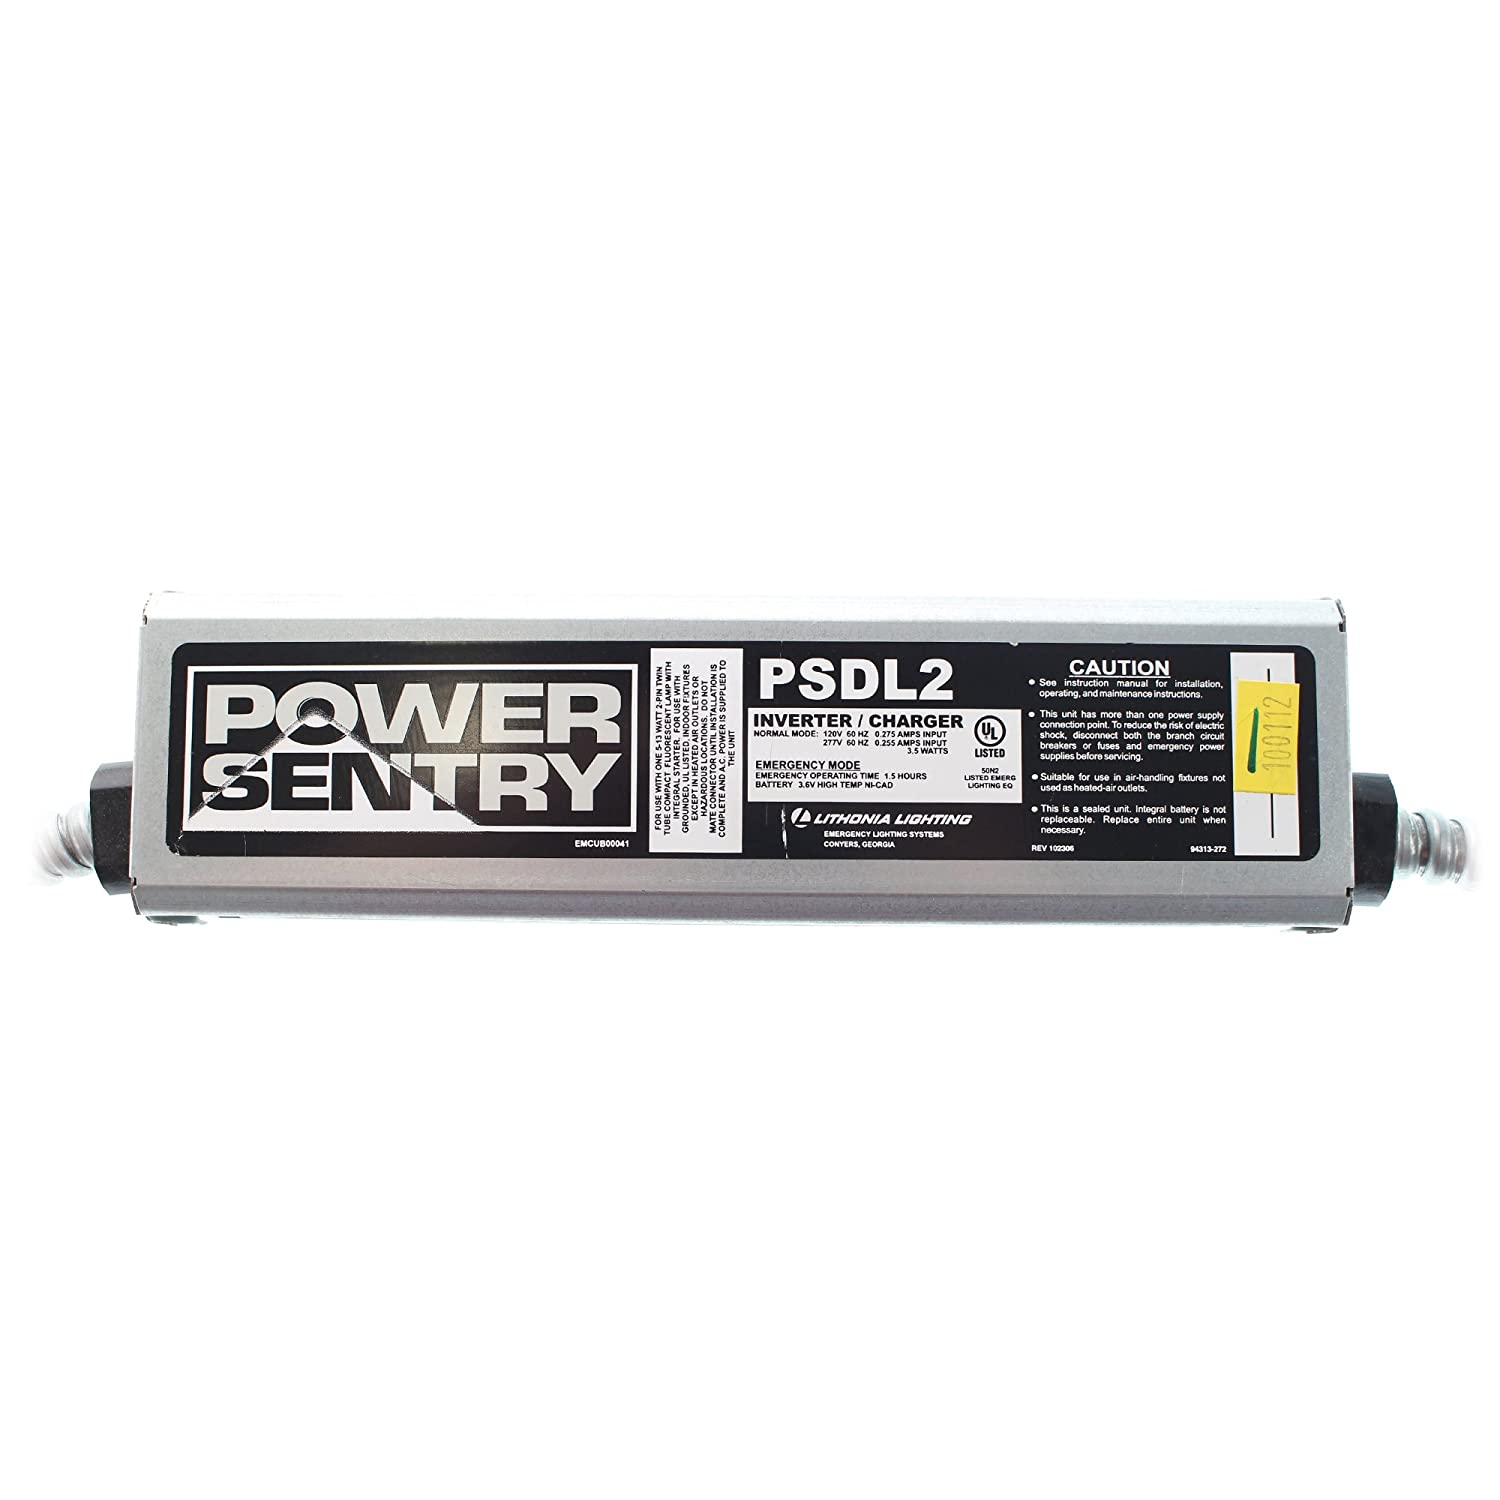 Power Sentry Psdl2 Fluorescent Emergency Ballast Battery Pack 120 Electrocution After Installing Unsafe Temporary Connection 277v